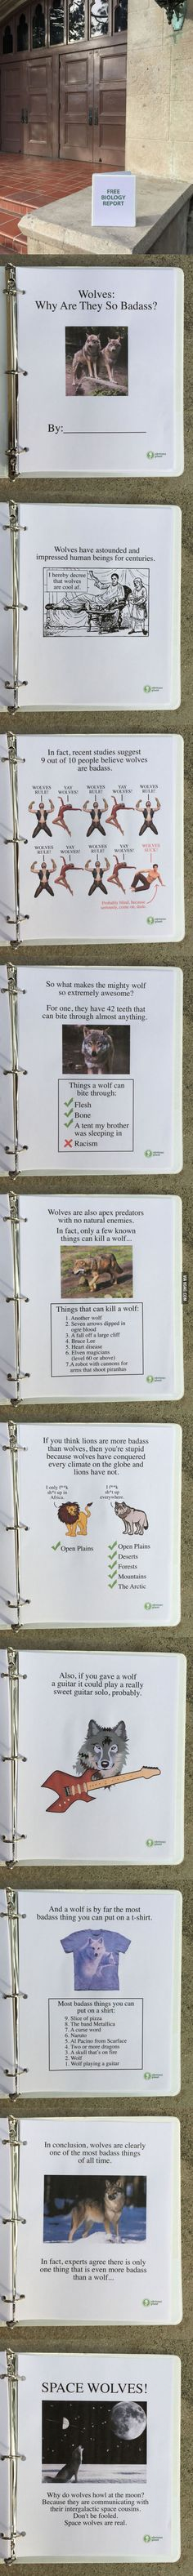 A guy left this free biology report about wolves outside a Los Angeles high school - 9GAG